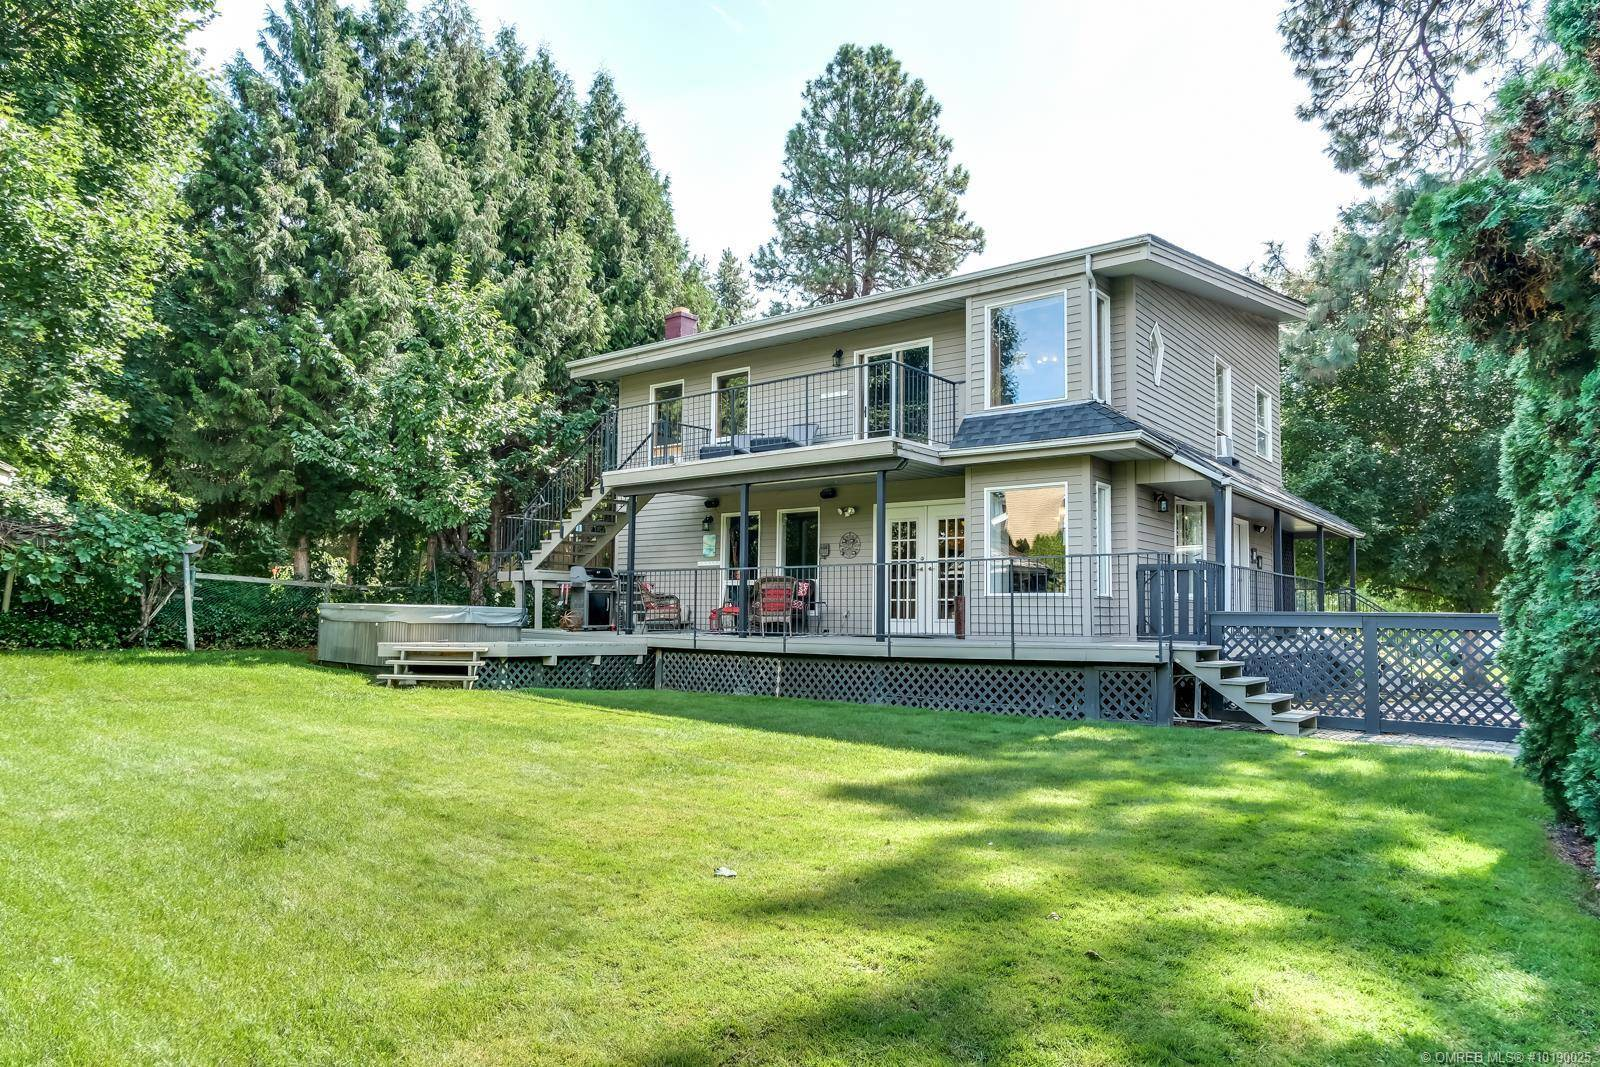 House for sale at 1796 Highland Dr North Kelowna British Columbia - MLS: 10190025